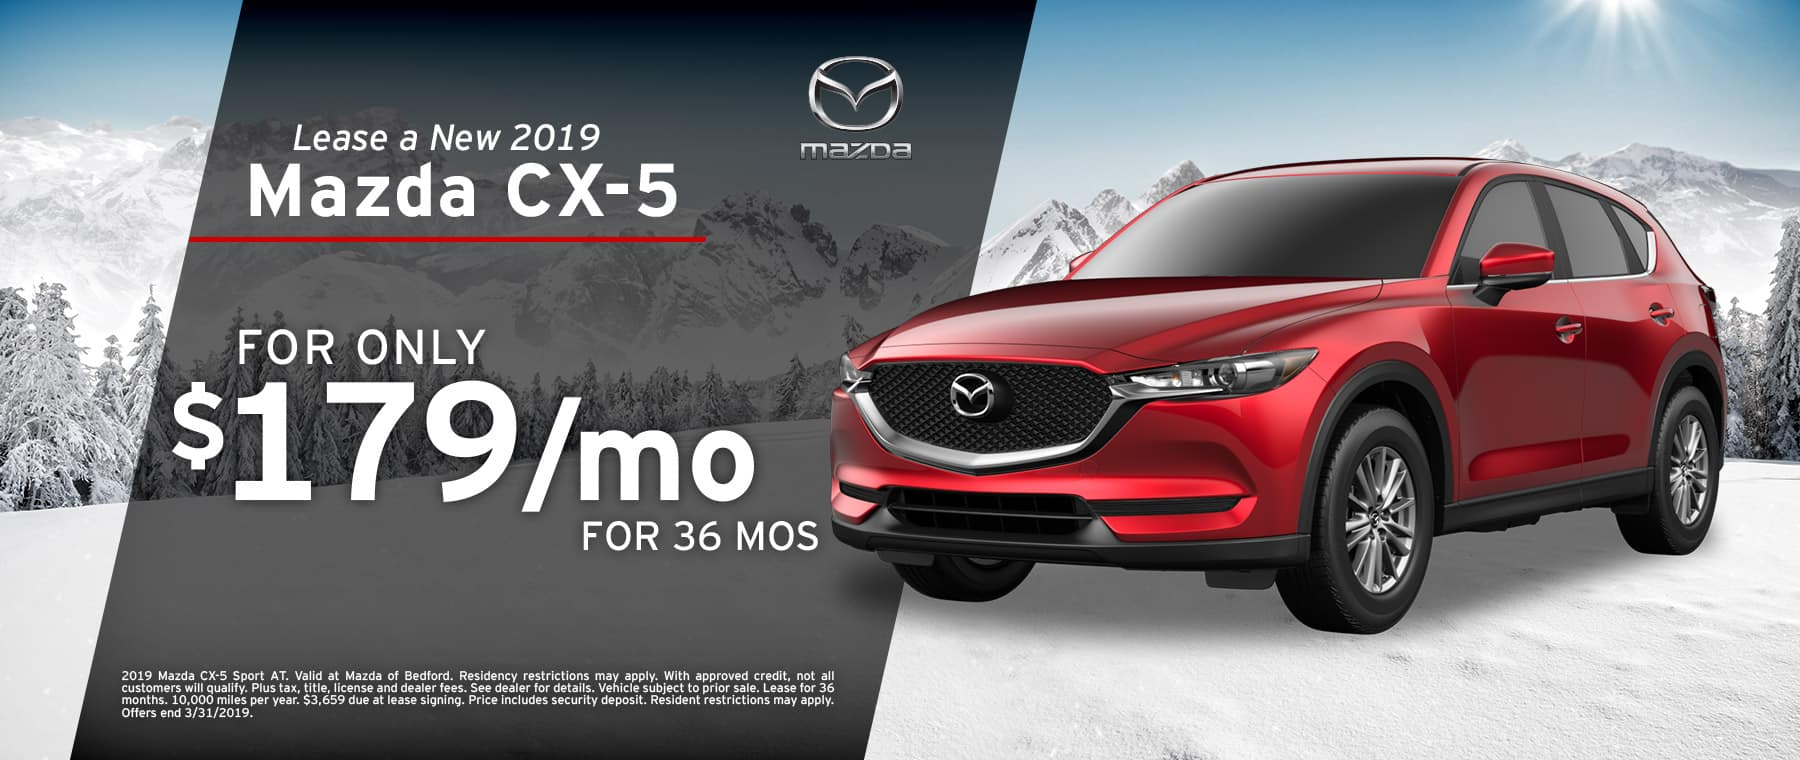 mazda of bedford lease specials   mazda of bedford   bedford, oh